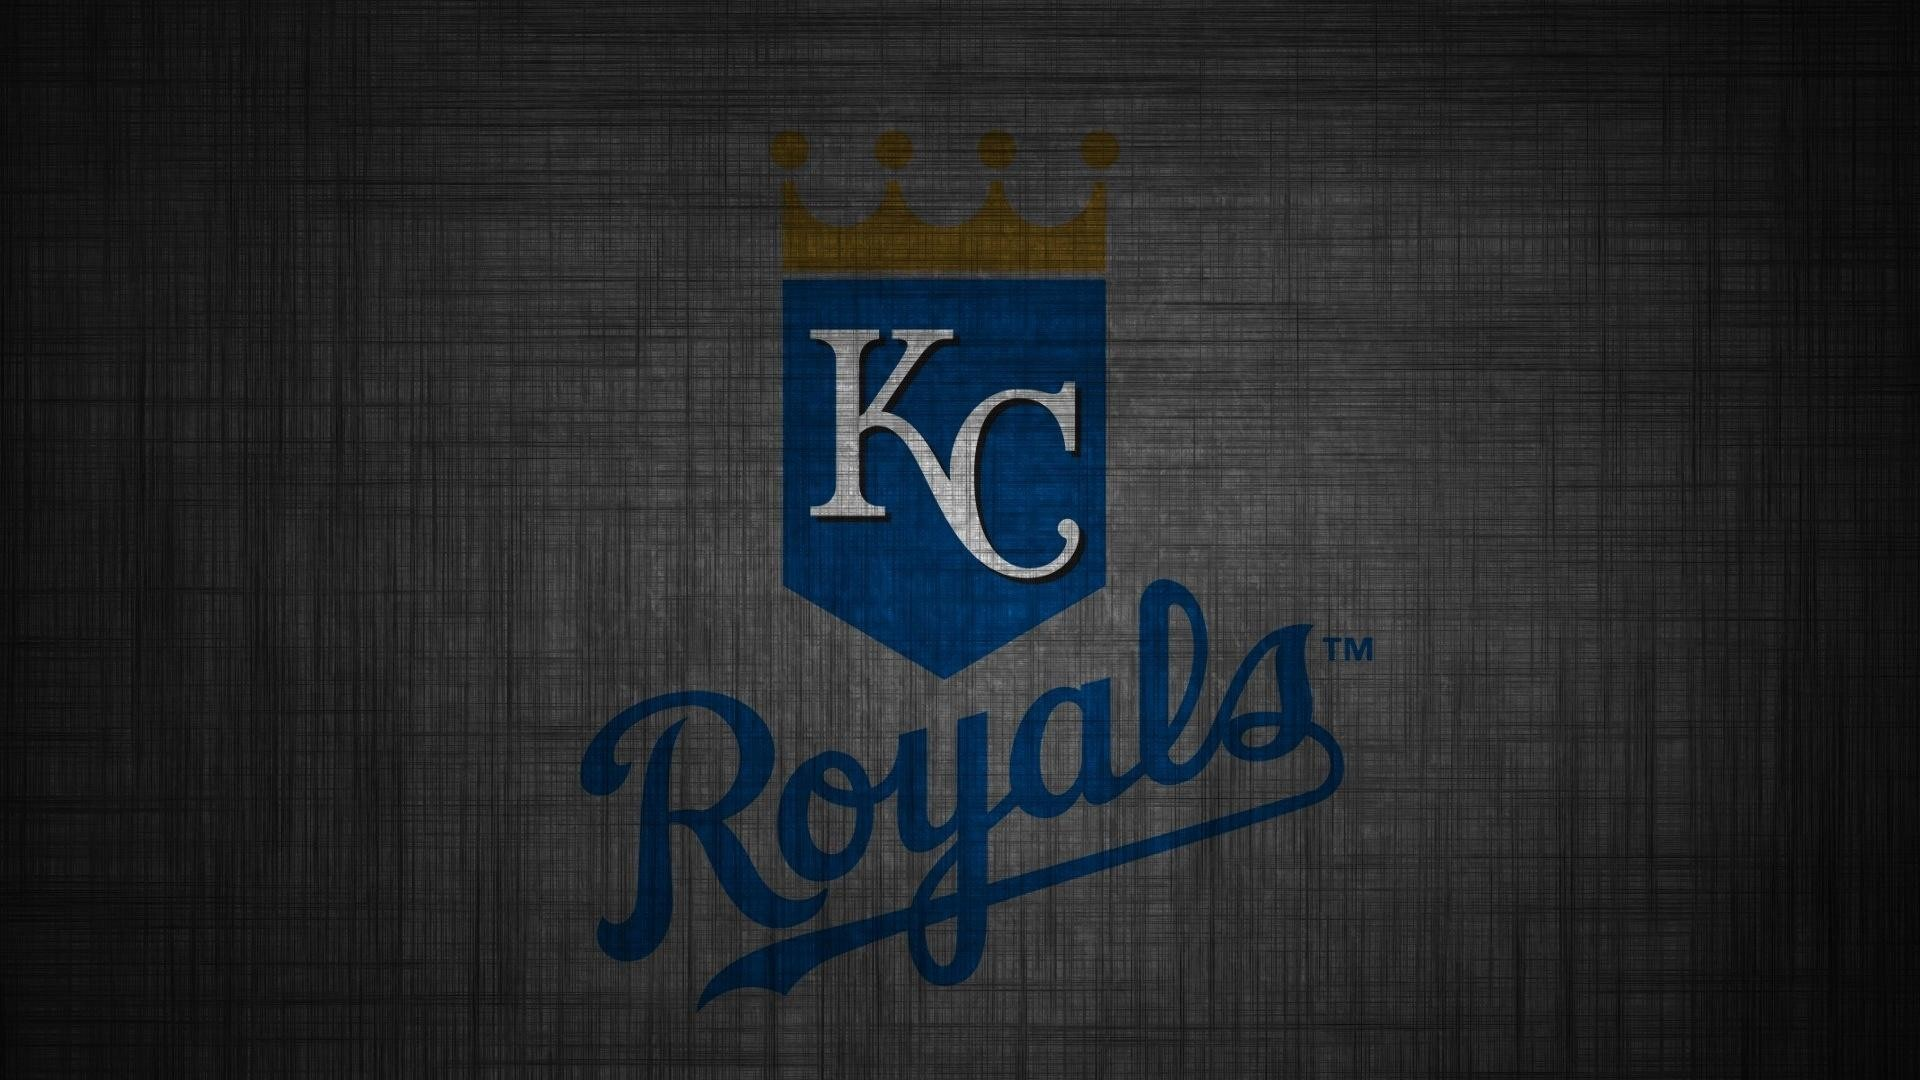 kansas city royles myspace background